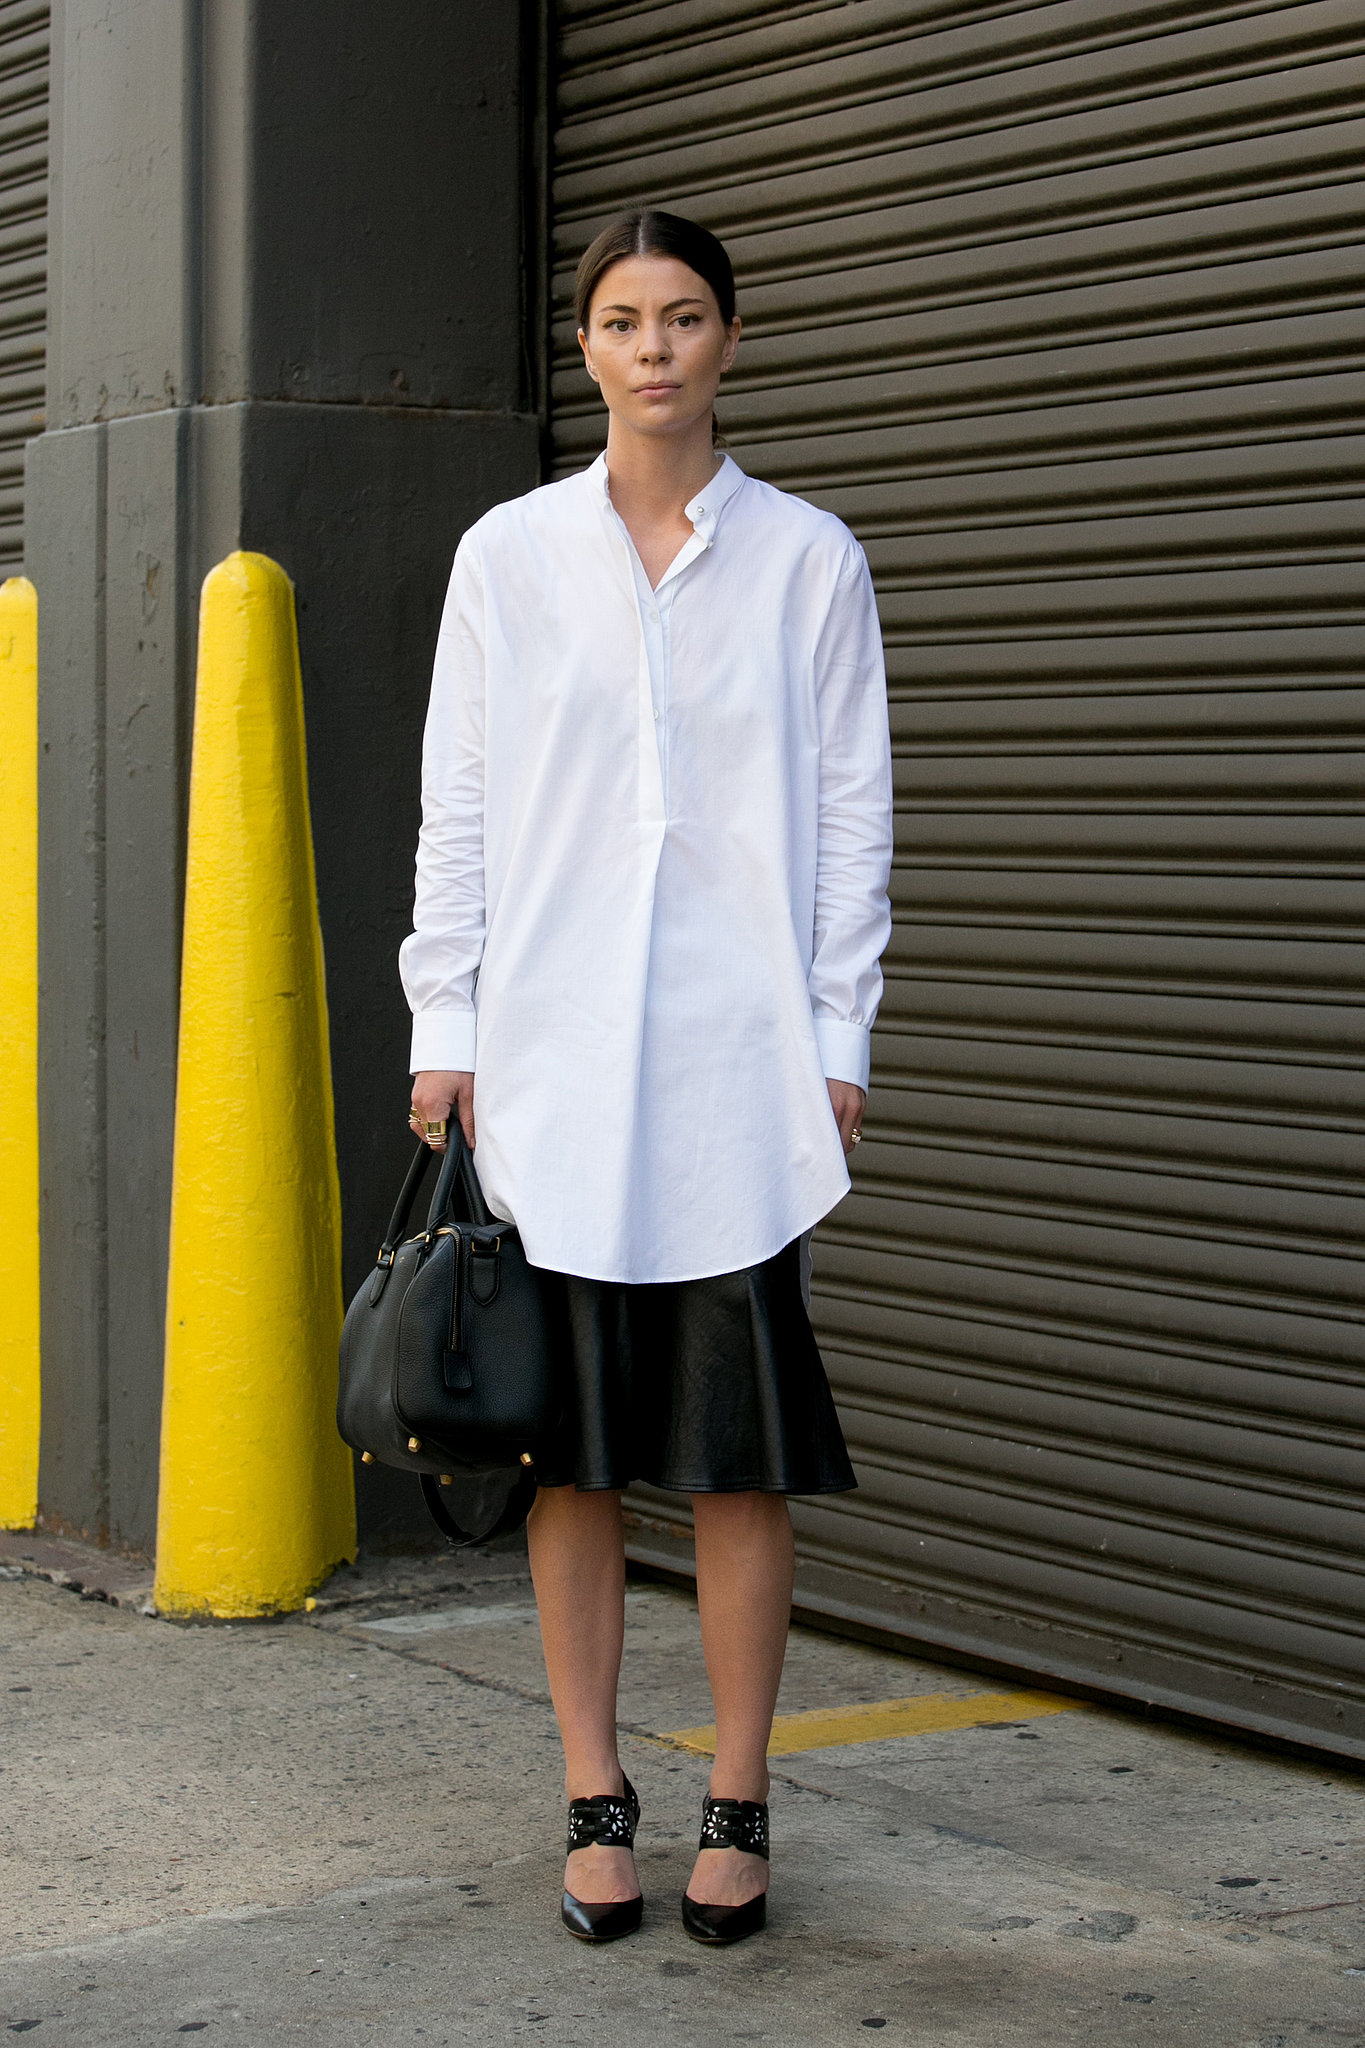 minimalist perfection in an oversize white shirt and